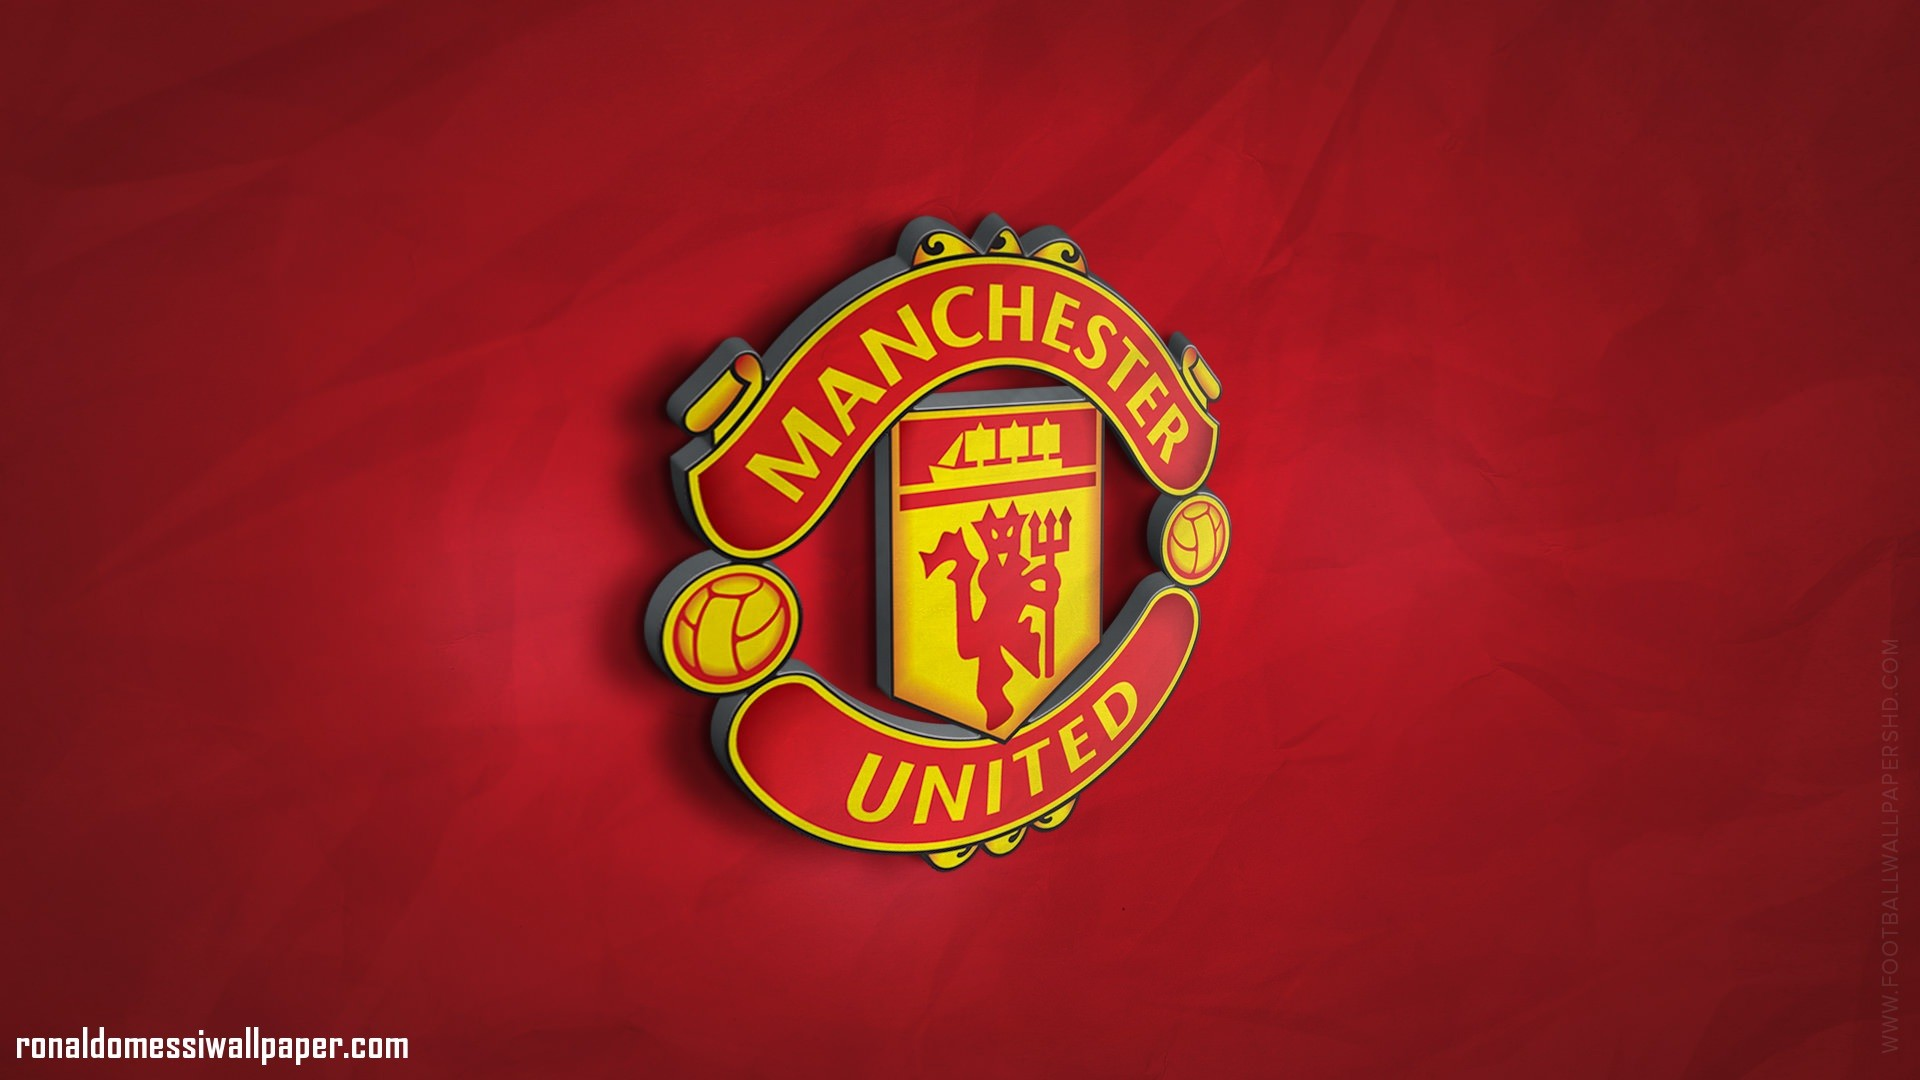 manchester united wallpaper android: Manchester United Wallpaper 2018 (71+ Images